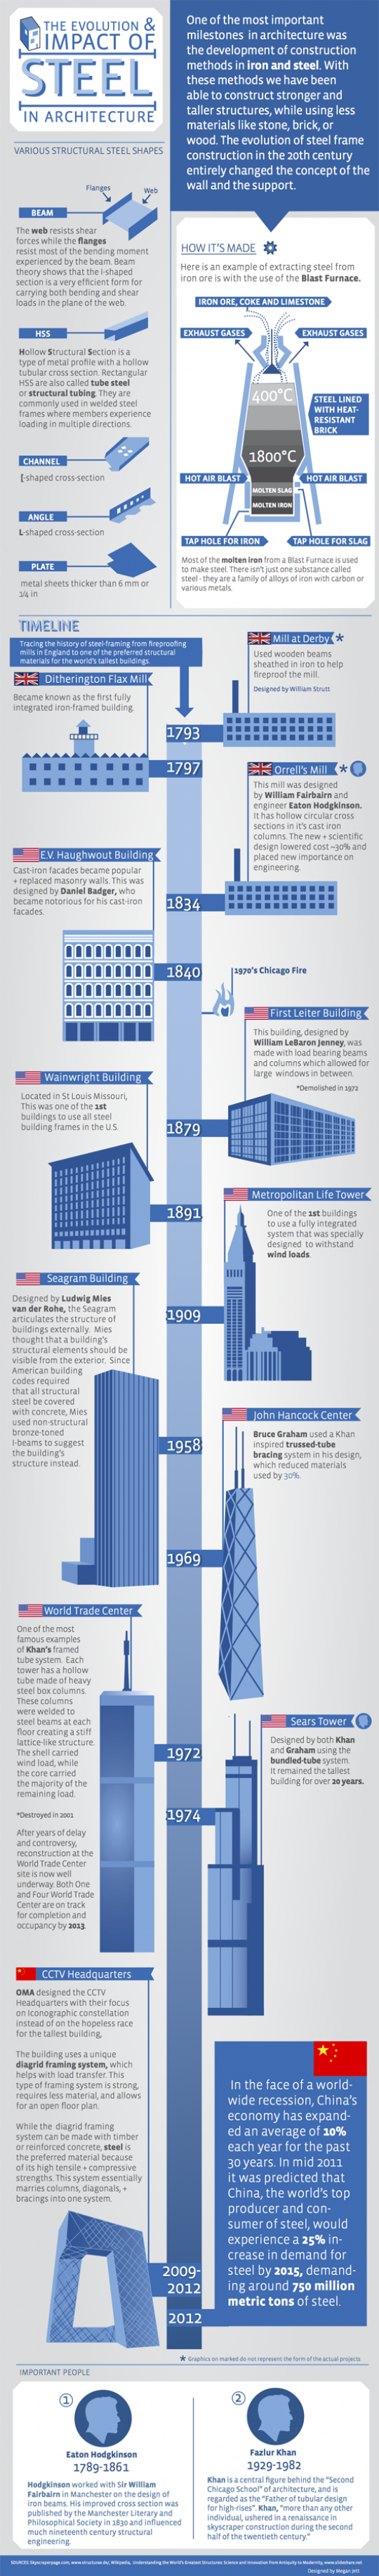 The evolution & impact of steel in Architecture